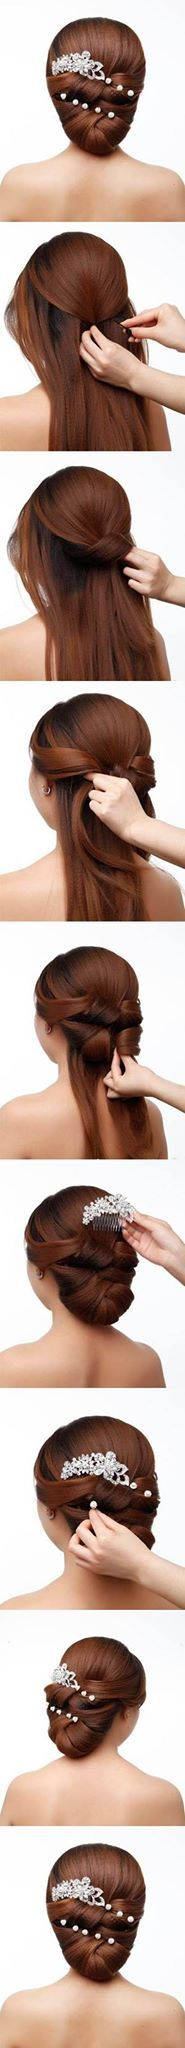 One great formal hairstyle and how to create it!